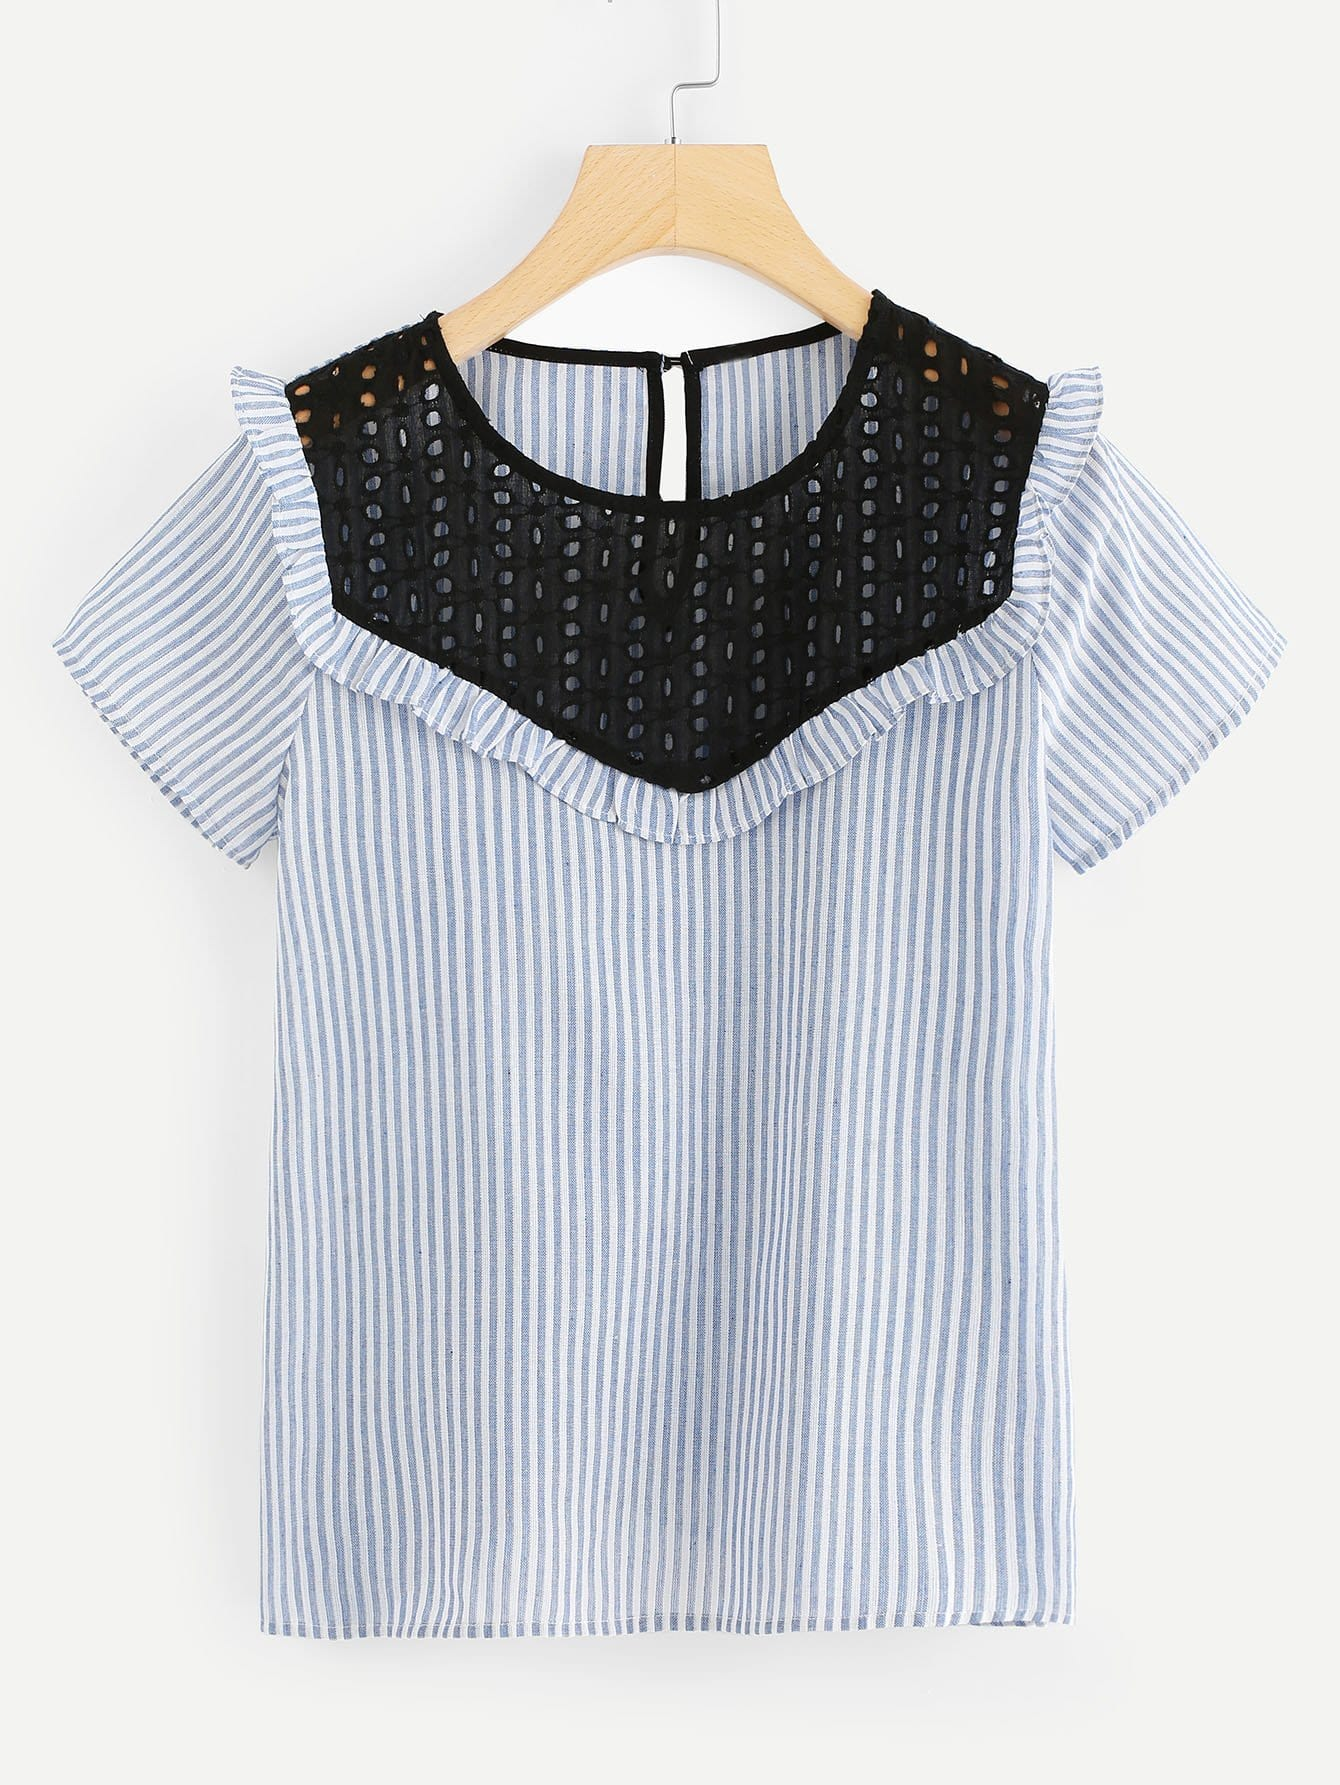 Contrast Eyelet Embroidered Yoke Striped Top contrast embroidered two tone plush top